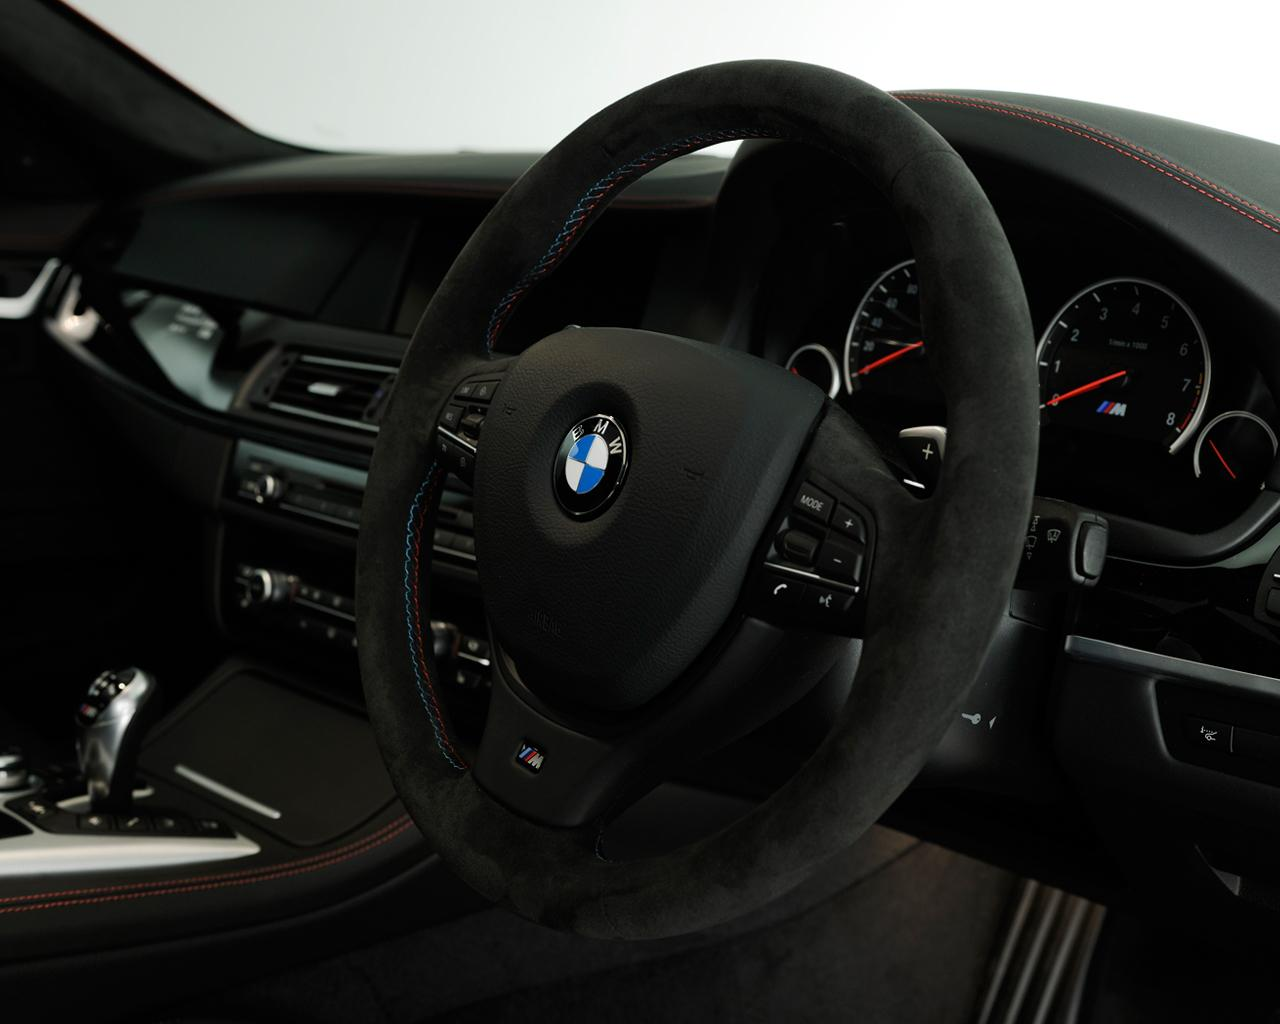 2012 BMW M5 M Performance Edition Details and Pricing - autoevolution